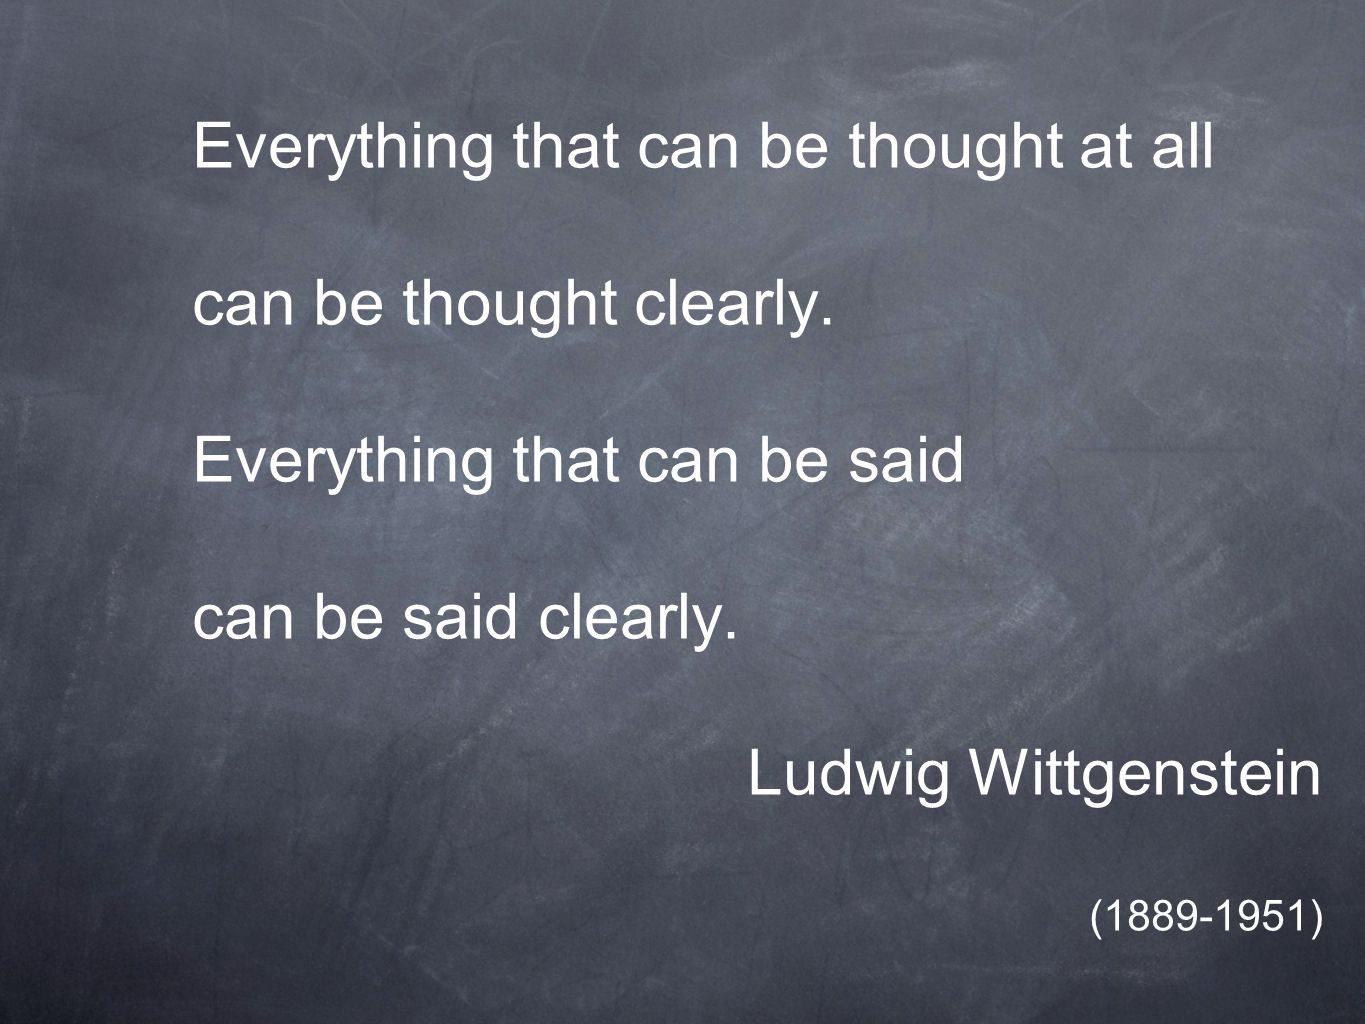 Everything that can be thought at all can be thought clearly.